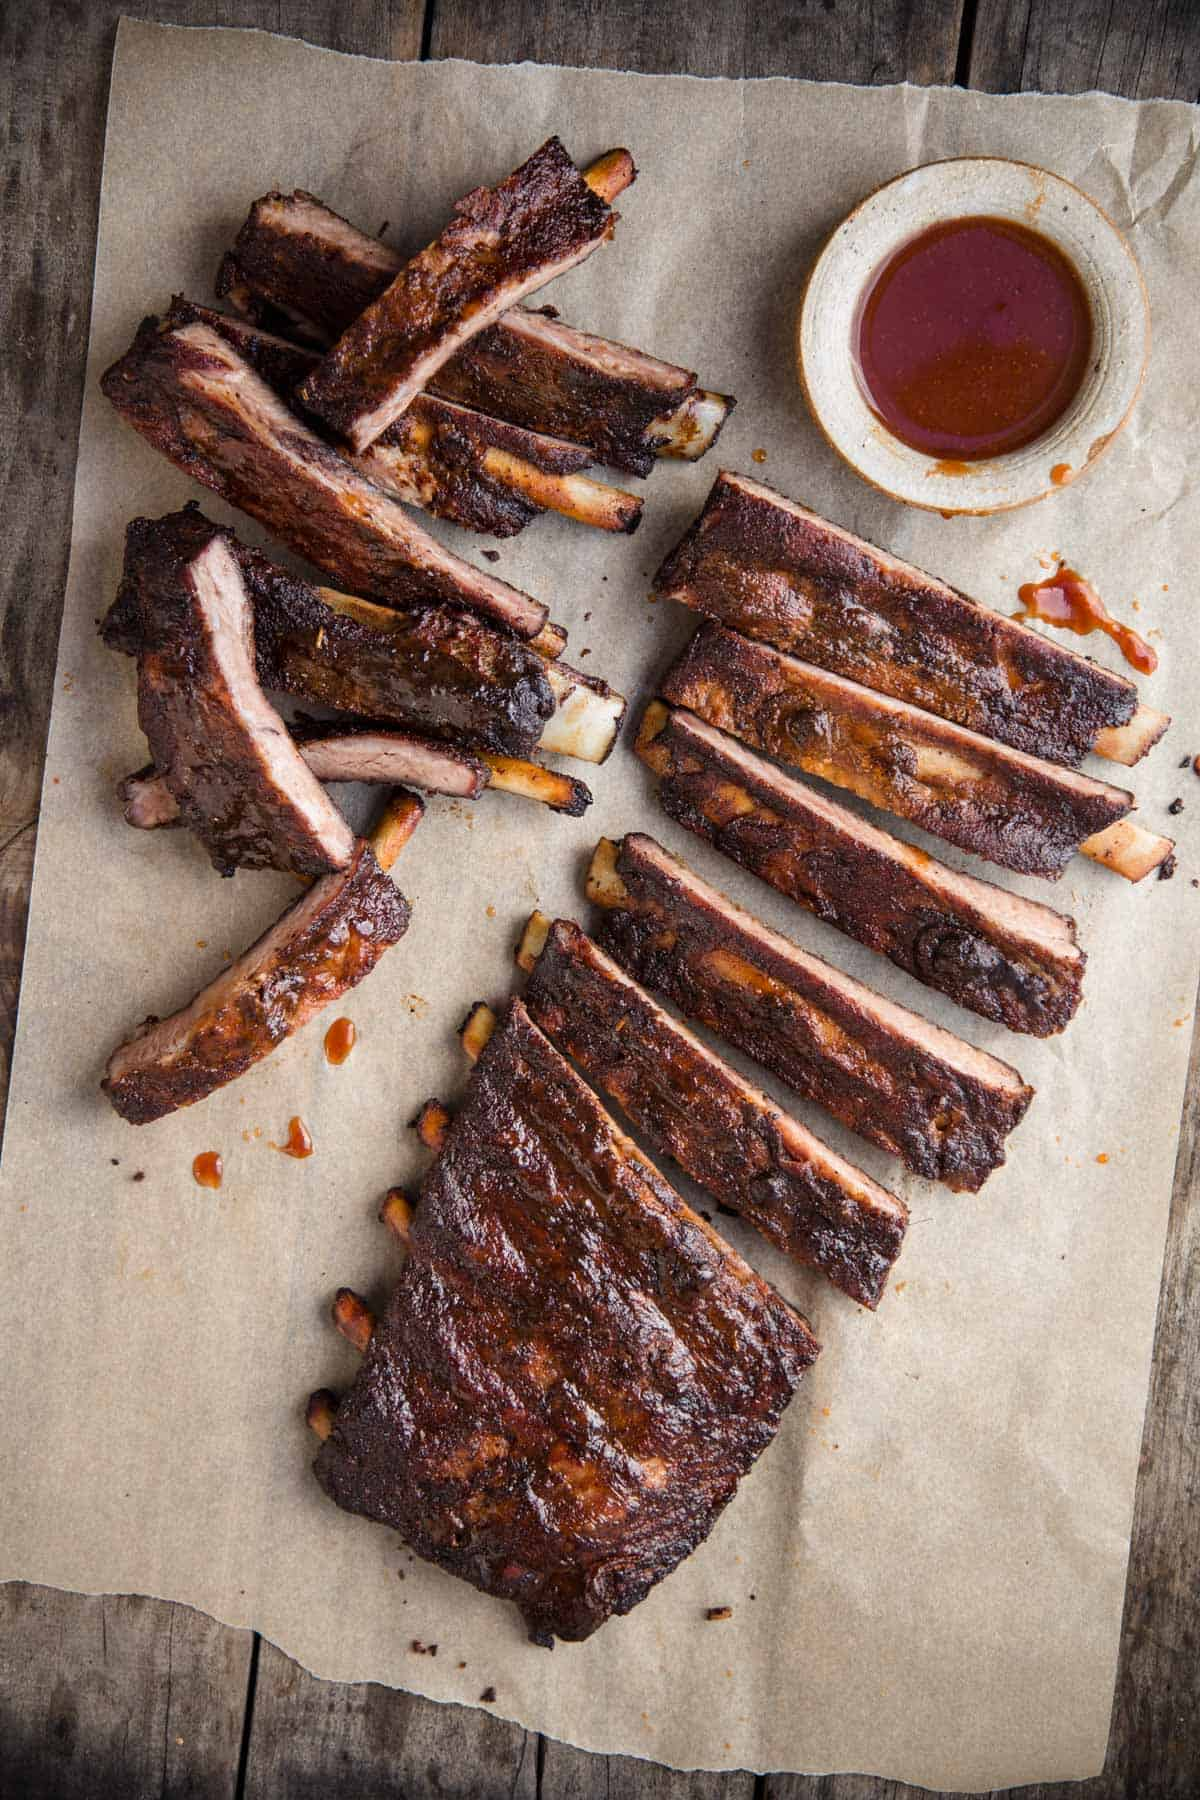 Smoked Spare Ribs cooked Memphis style and served with a side of sauce